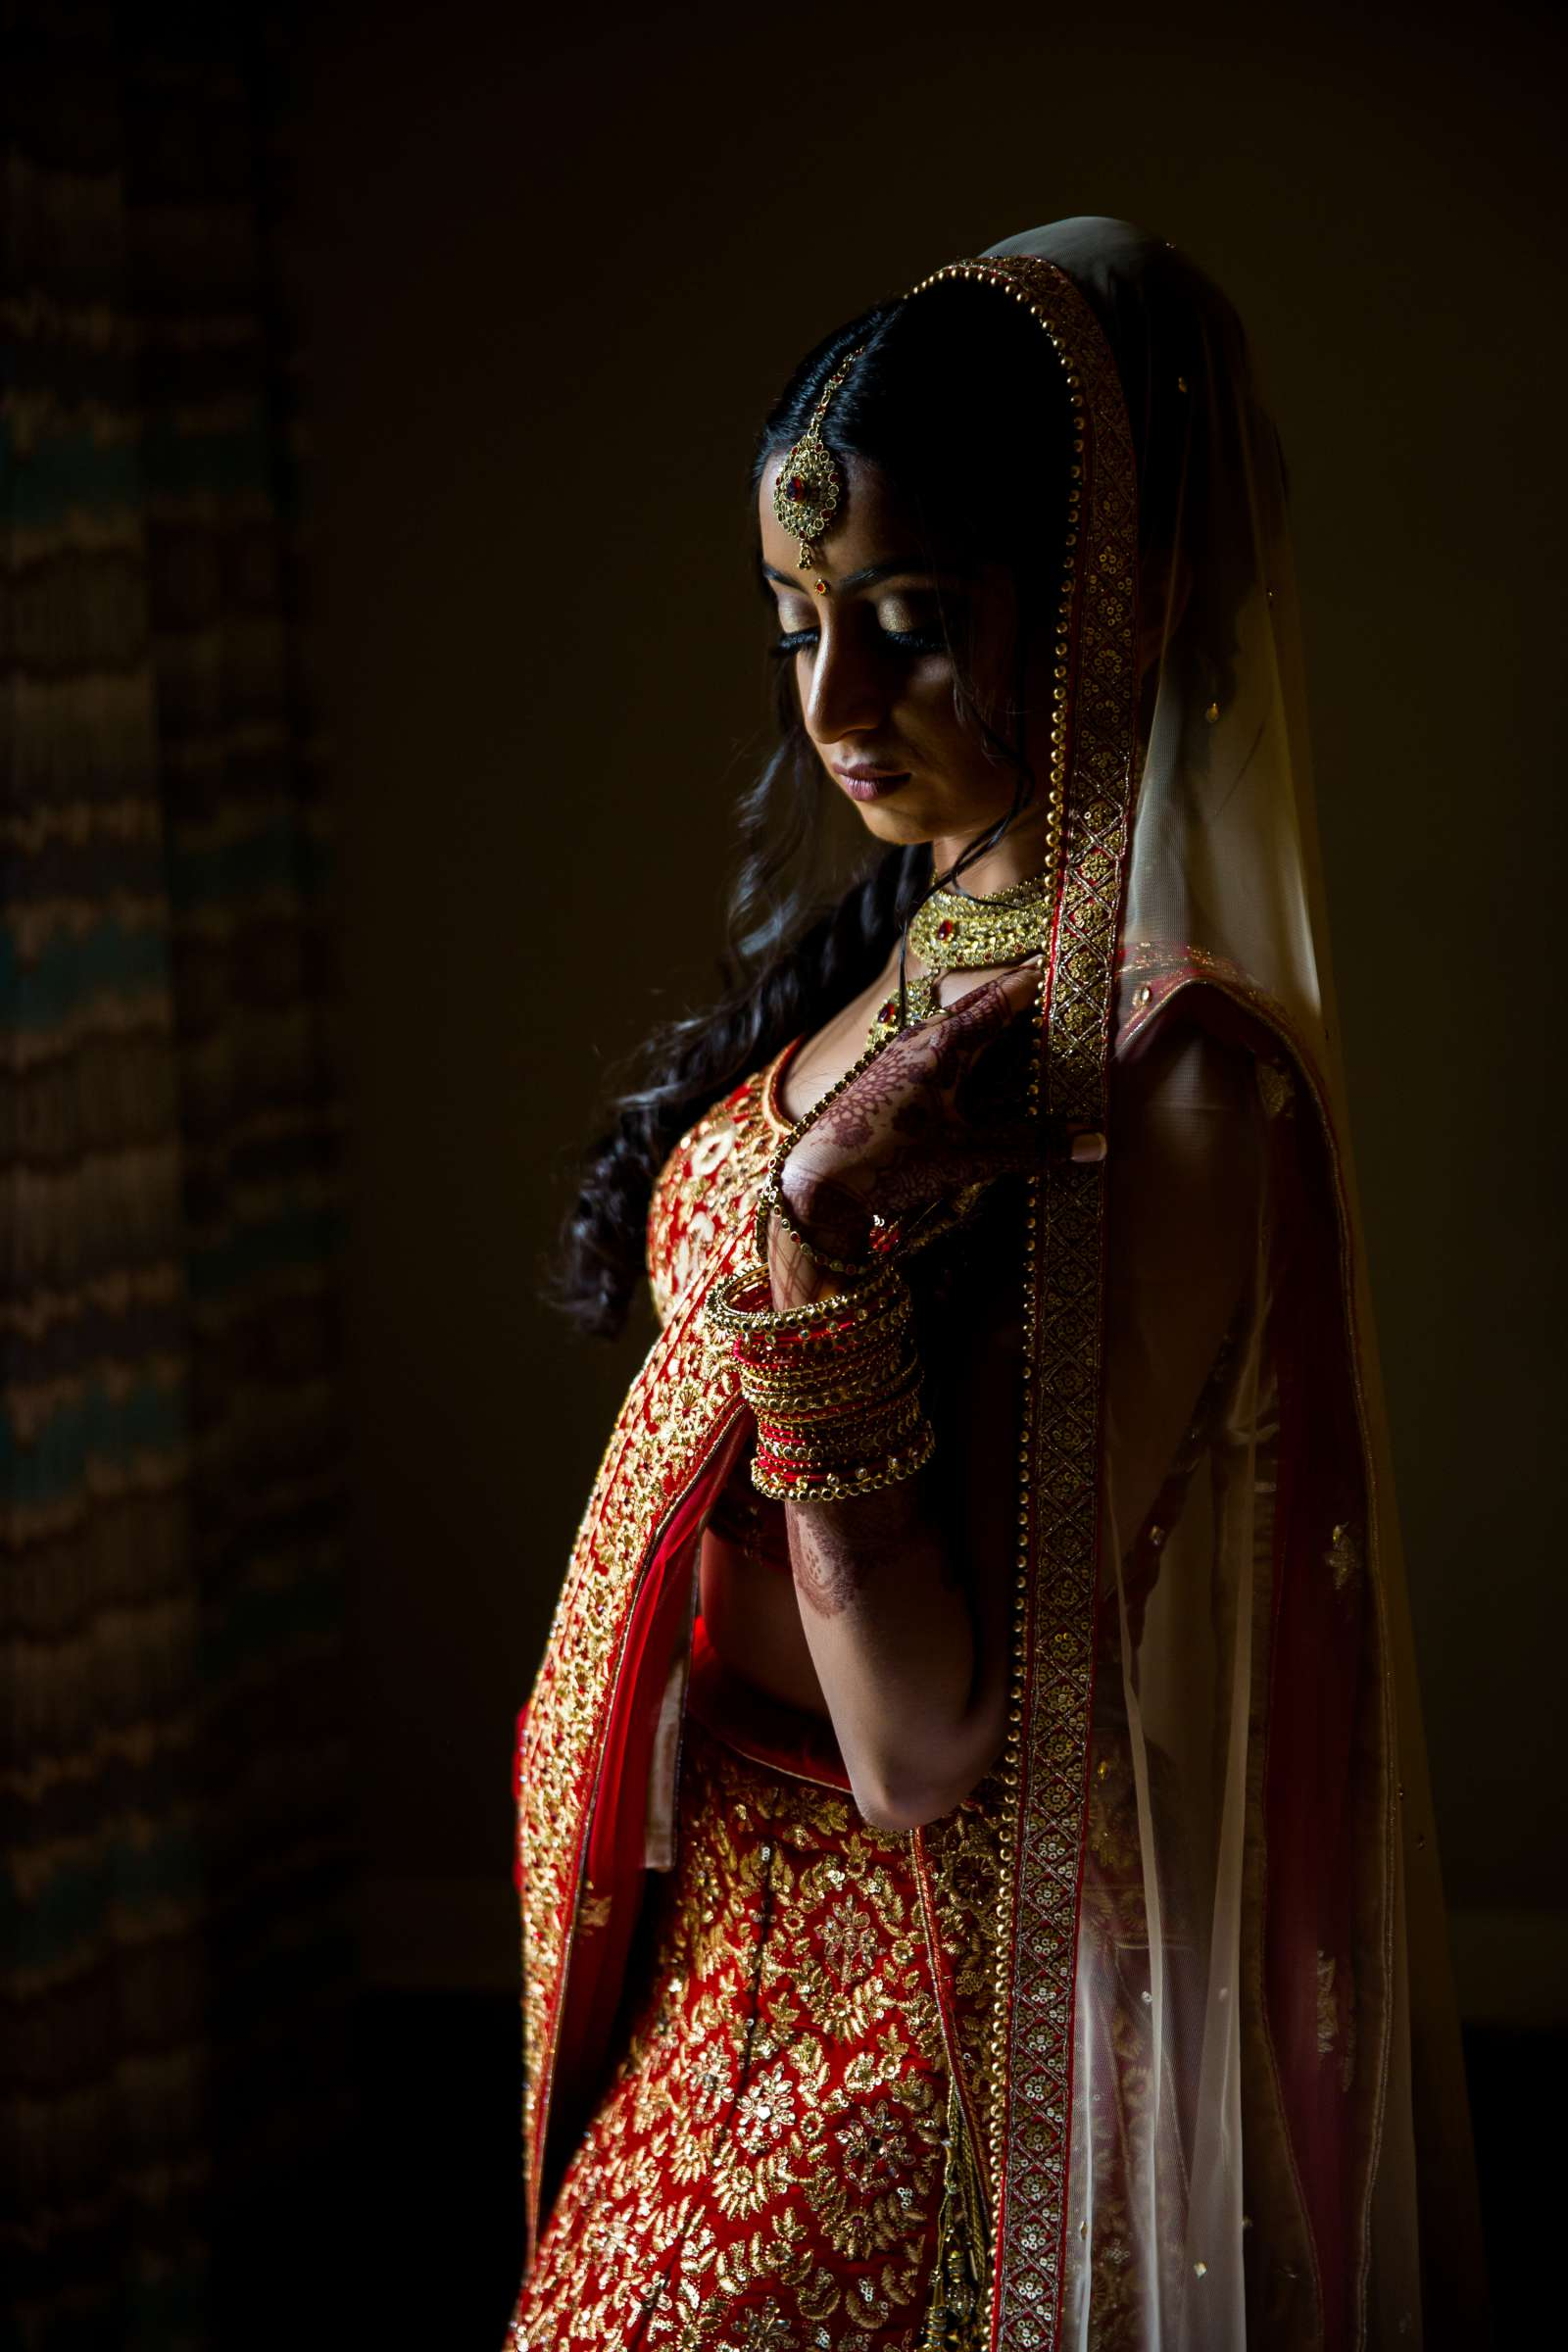 Bride at The Westin Carlsbad Resort and Spa Wedding coordinated by Shilpa Patel Events, Ami and Amit Wedding Photo #6 by True Photography